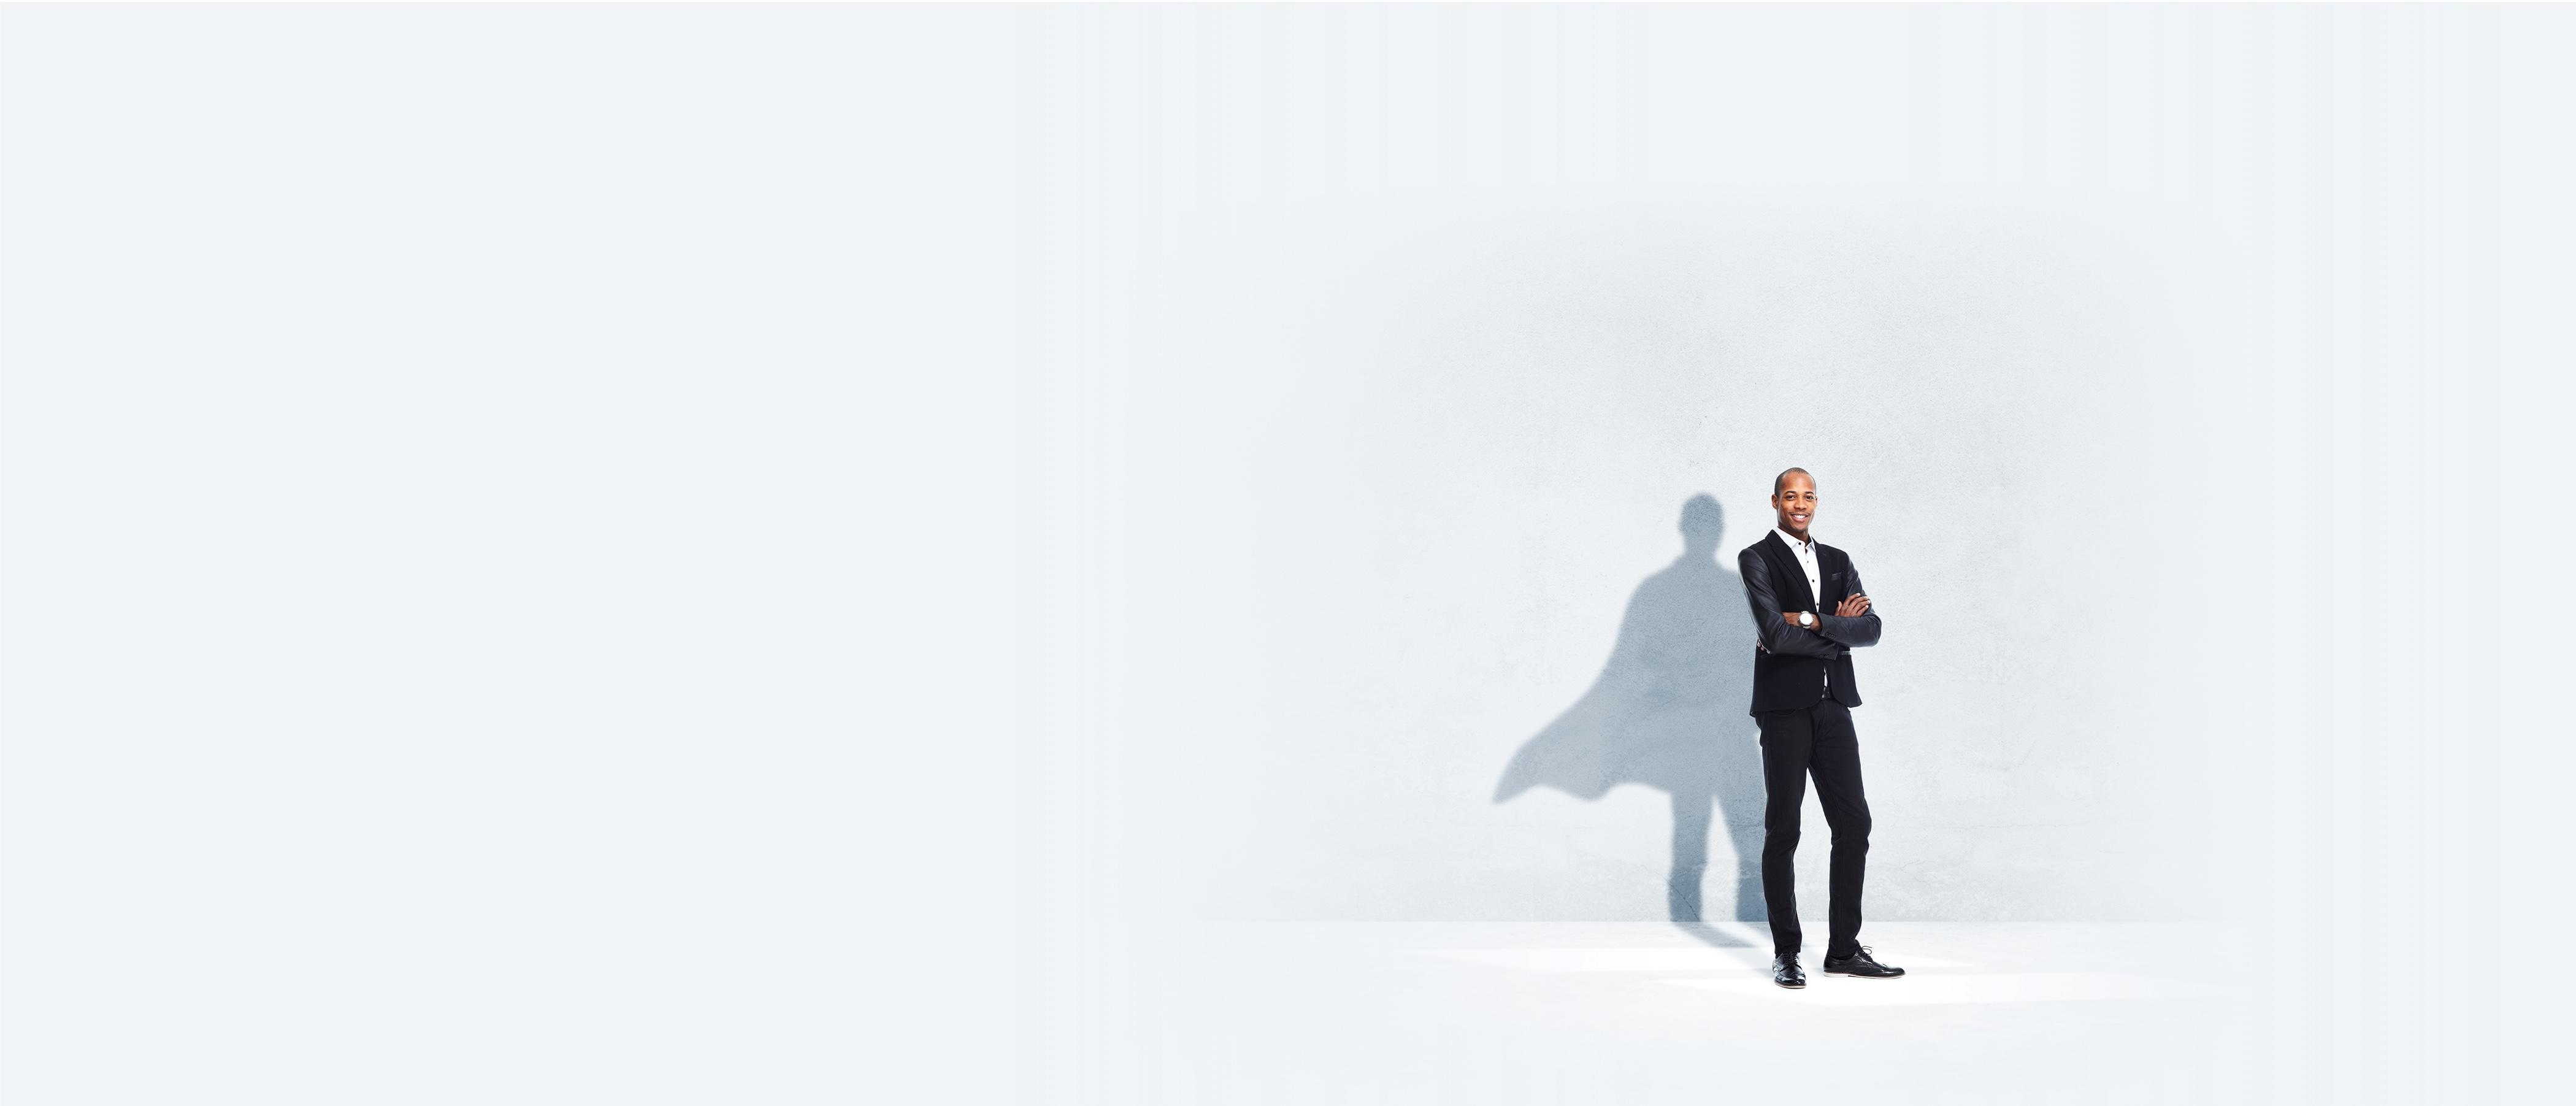 Businessman standing confidently with a caped-superhero shadow behind him